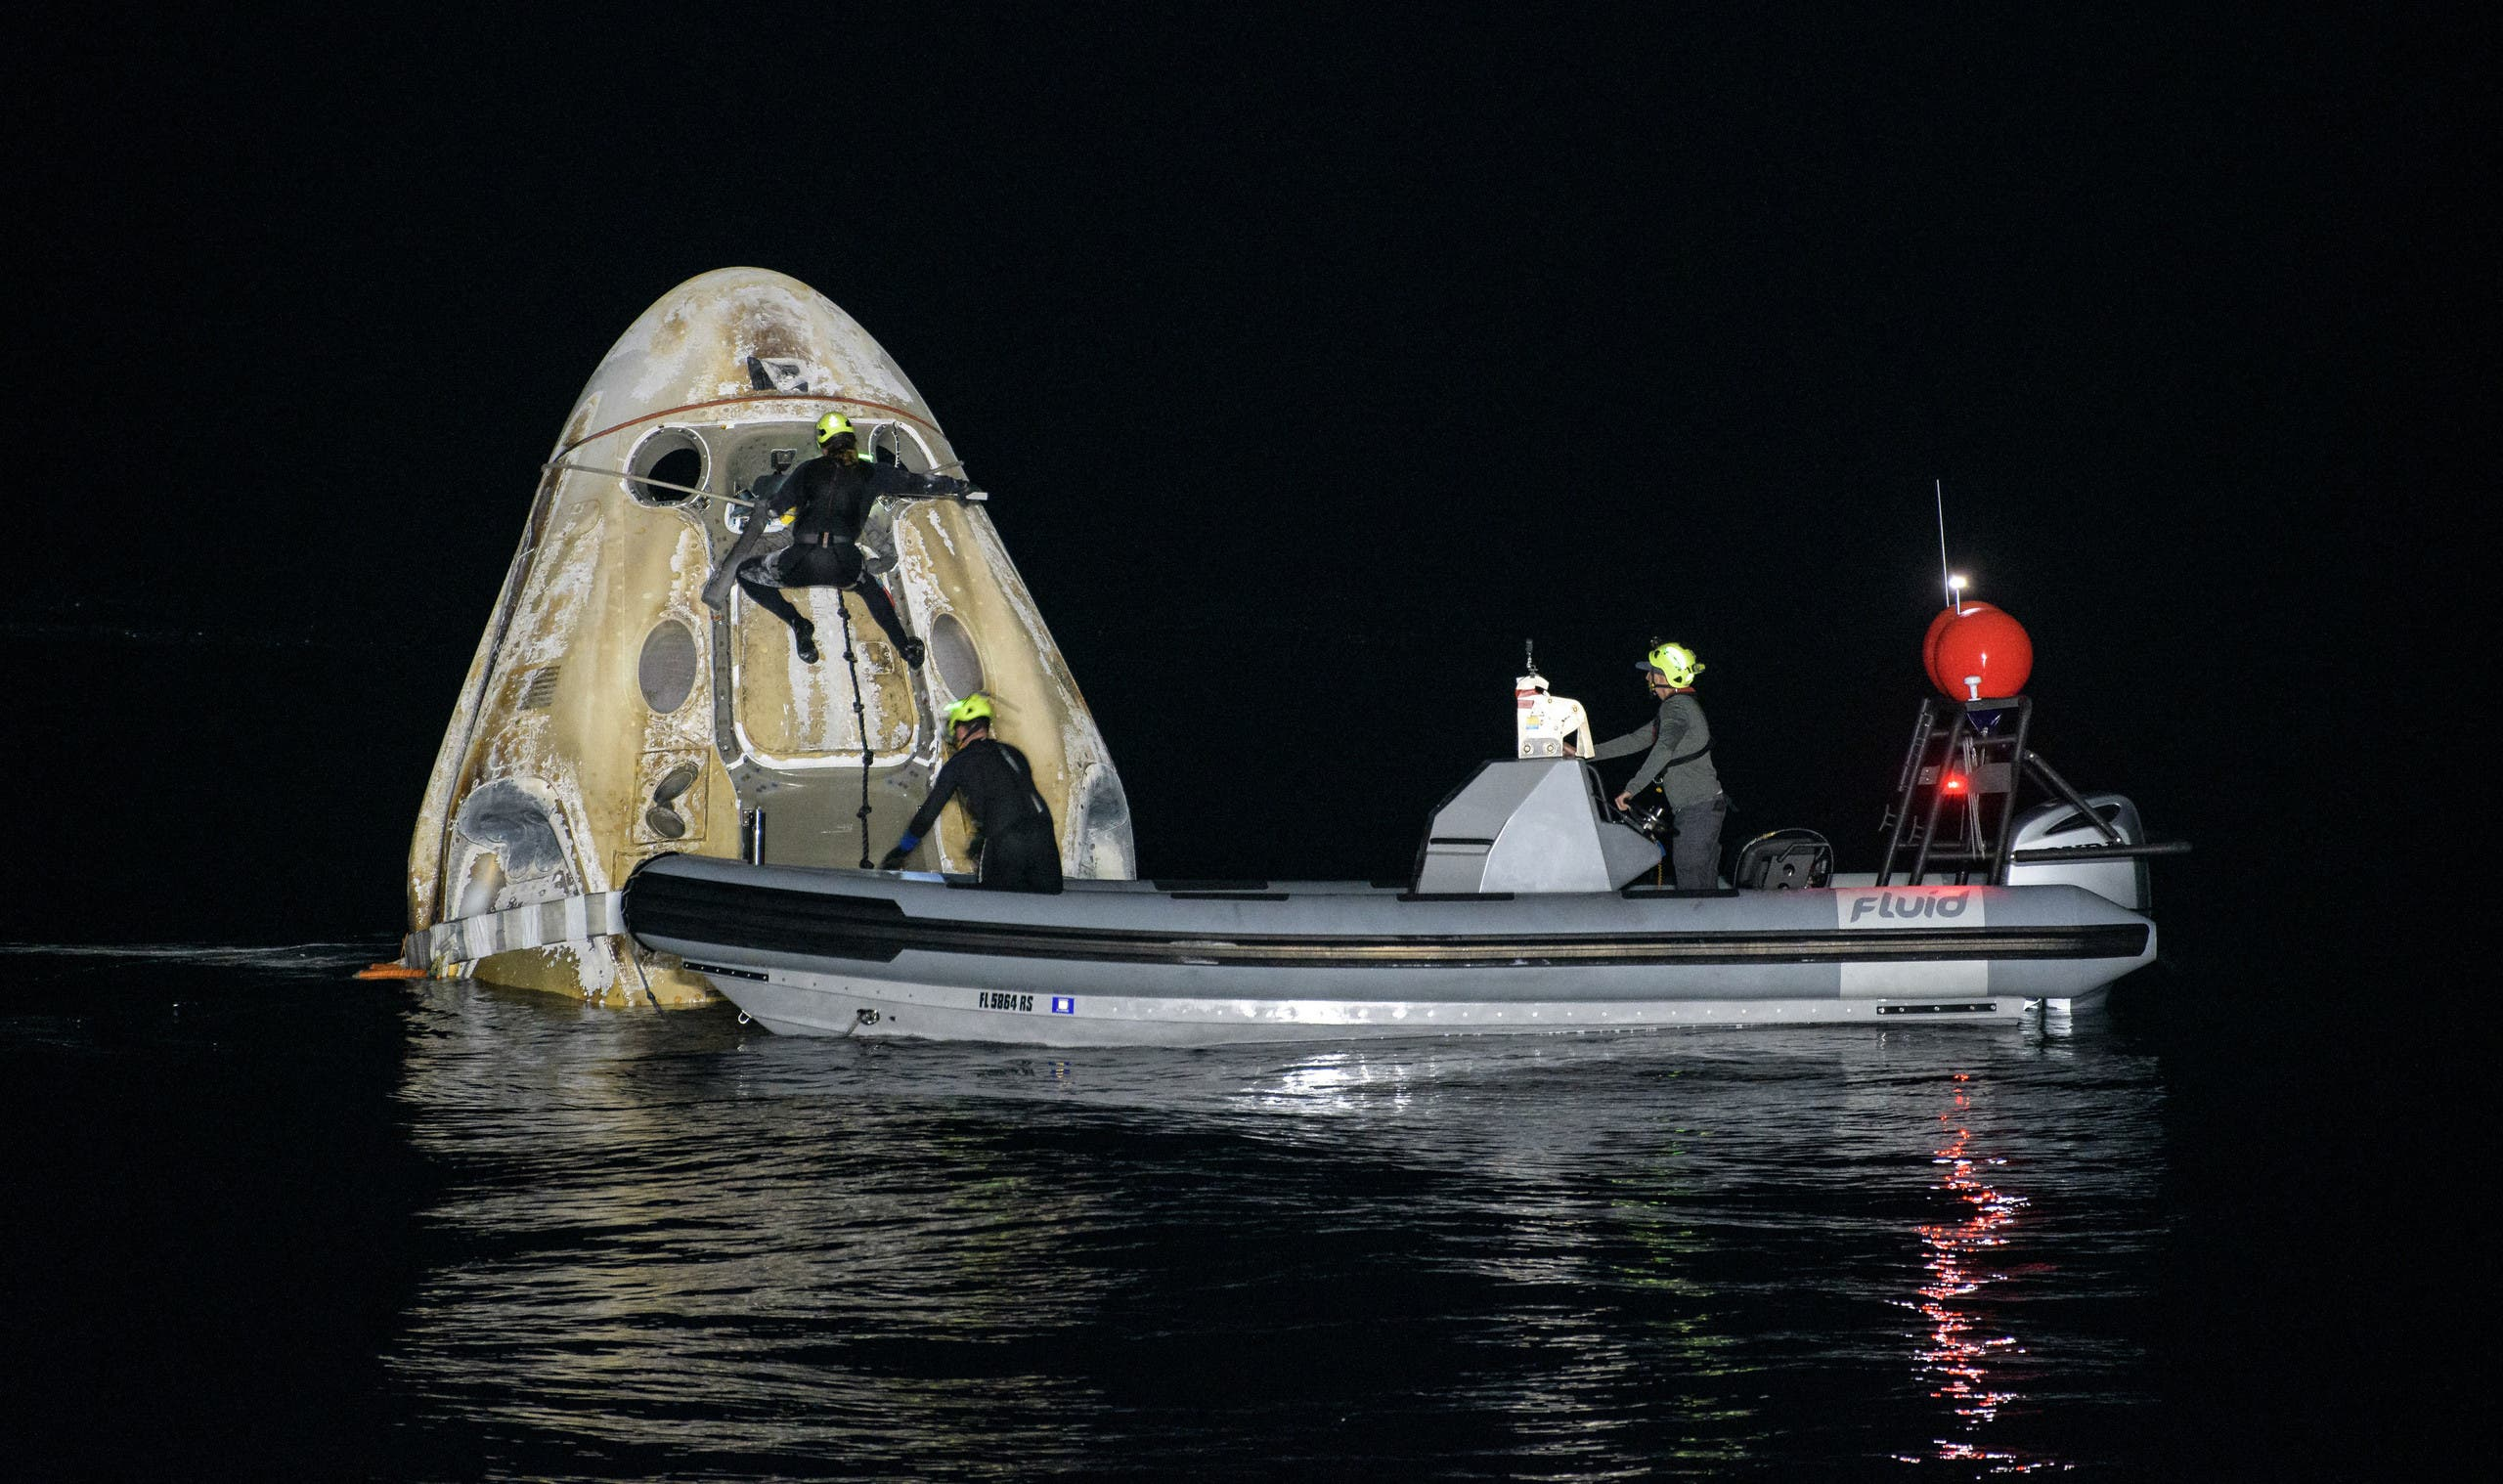 This handout image courtesy of NASA and made available on May 2, 2021, shows the support teams working around the SpaceX Crew Dragon Resilience spacecraft shortly after it landed with NASA astronauts Mike Hopkins, Shannon Walker, and Victor Glover, and Japan Aerospace Exploration Agency (JAXA) astronaut Soichi Noguchi aboard in the Gulf of Mexico off the coast of Panama City, Florida on May 2, 2021. (AFP)